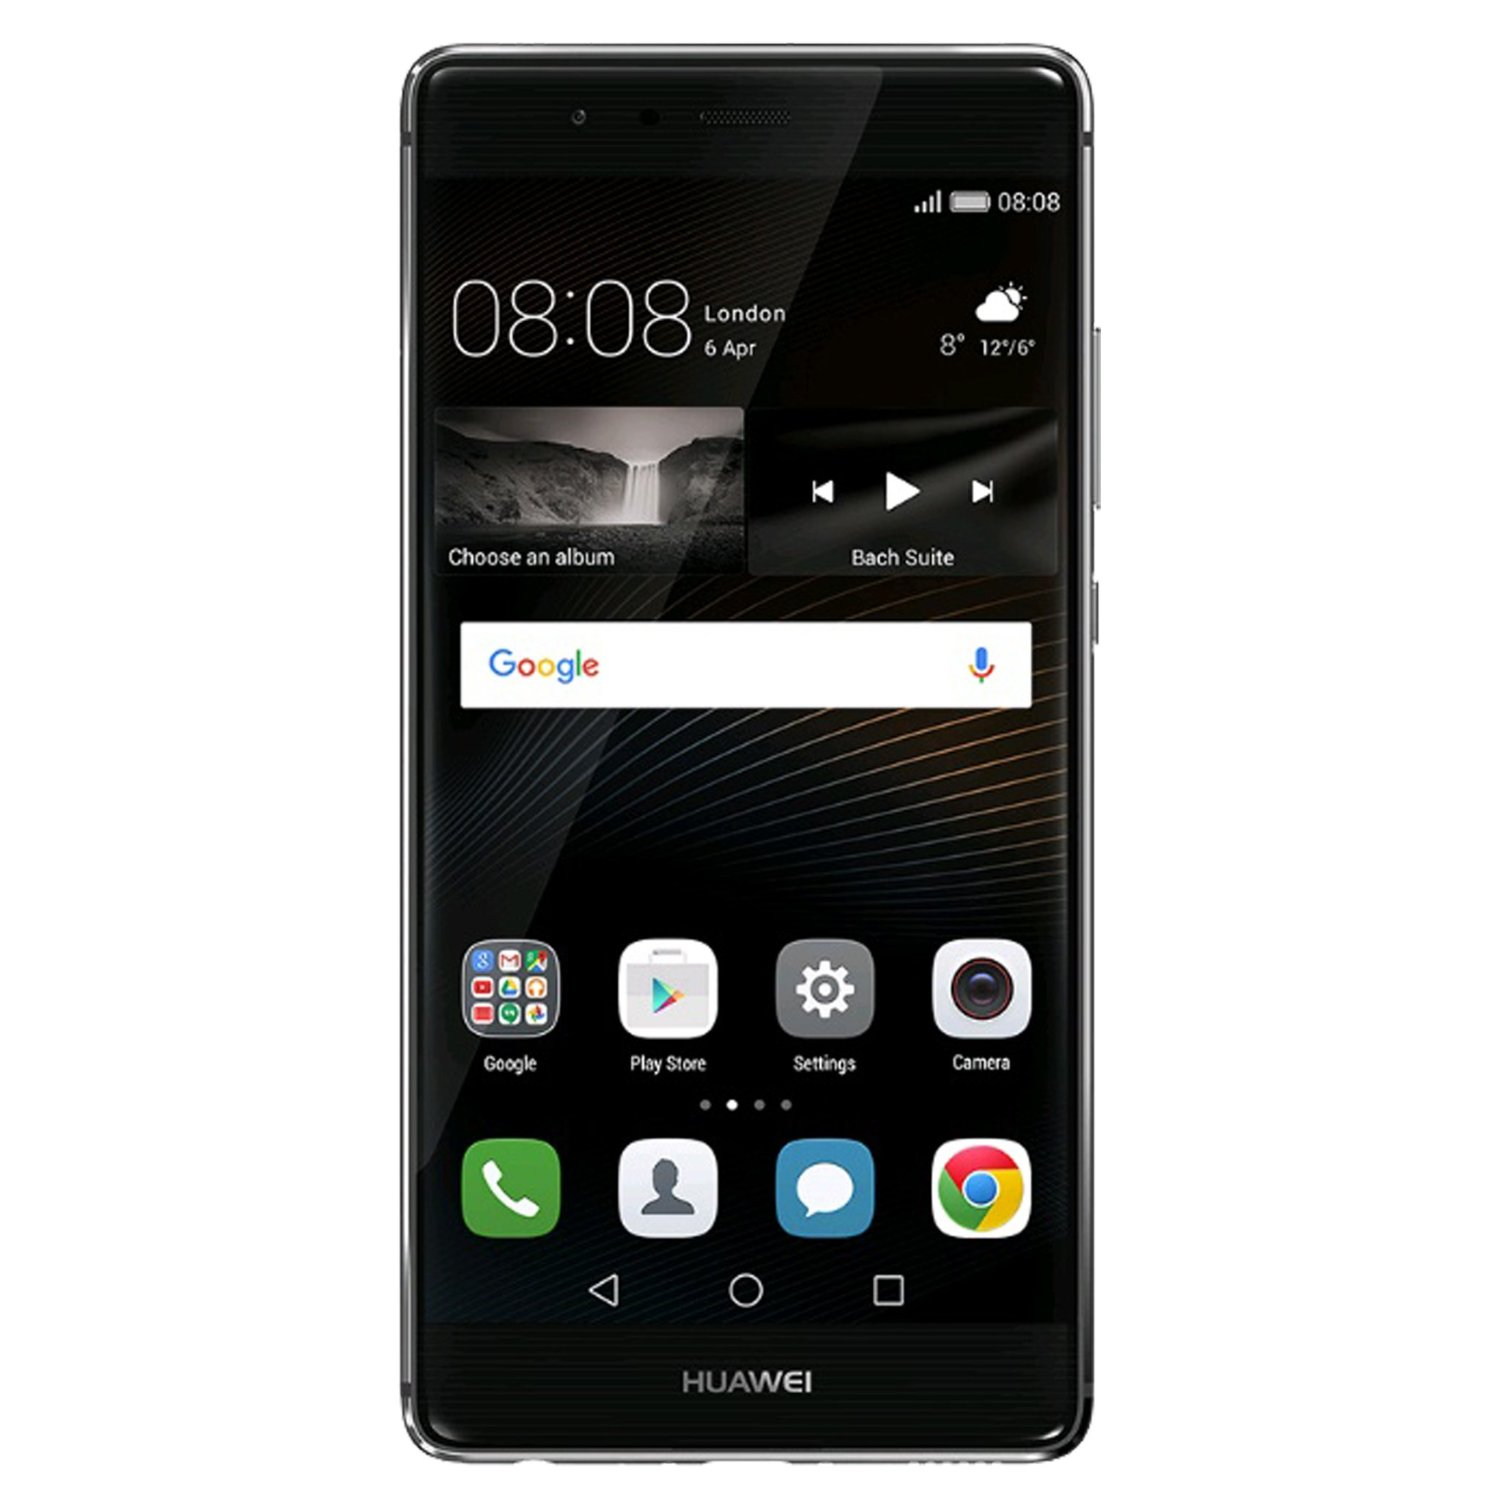 Huawei P9 EVA-L09 32GB Single-SIM Android Smartphone - Factory Unlocked - International Version with No Warranty (Titanium Grey)